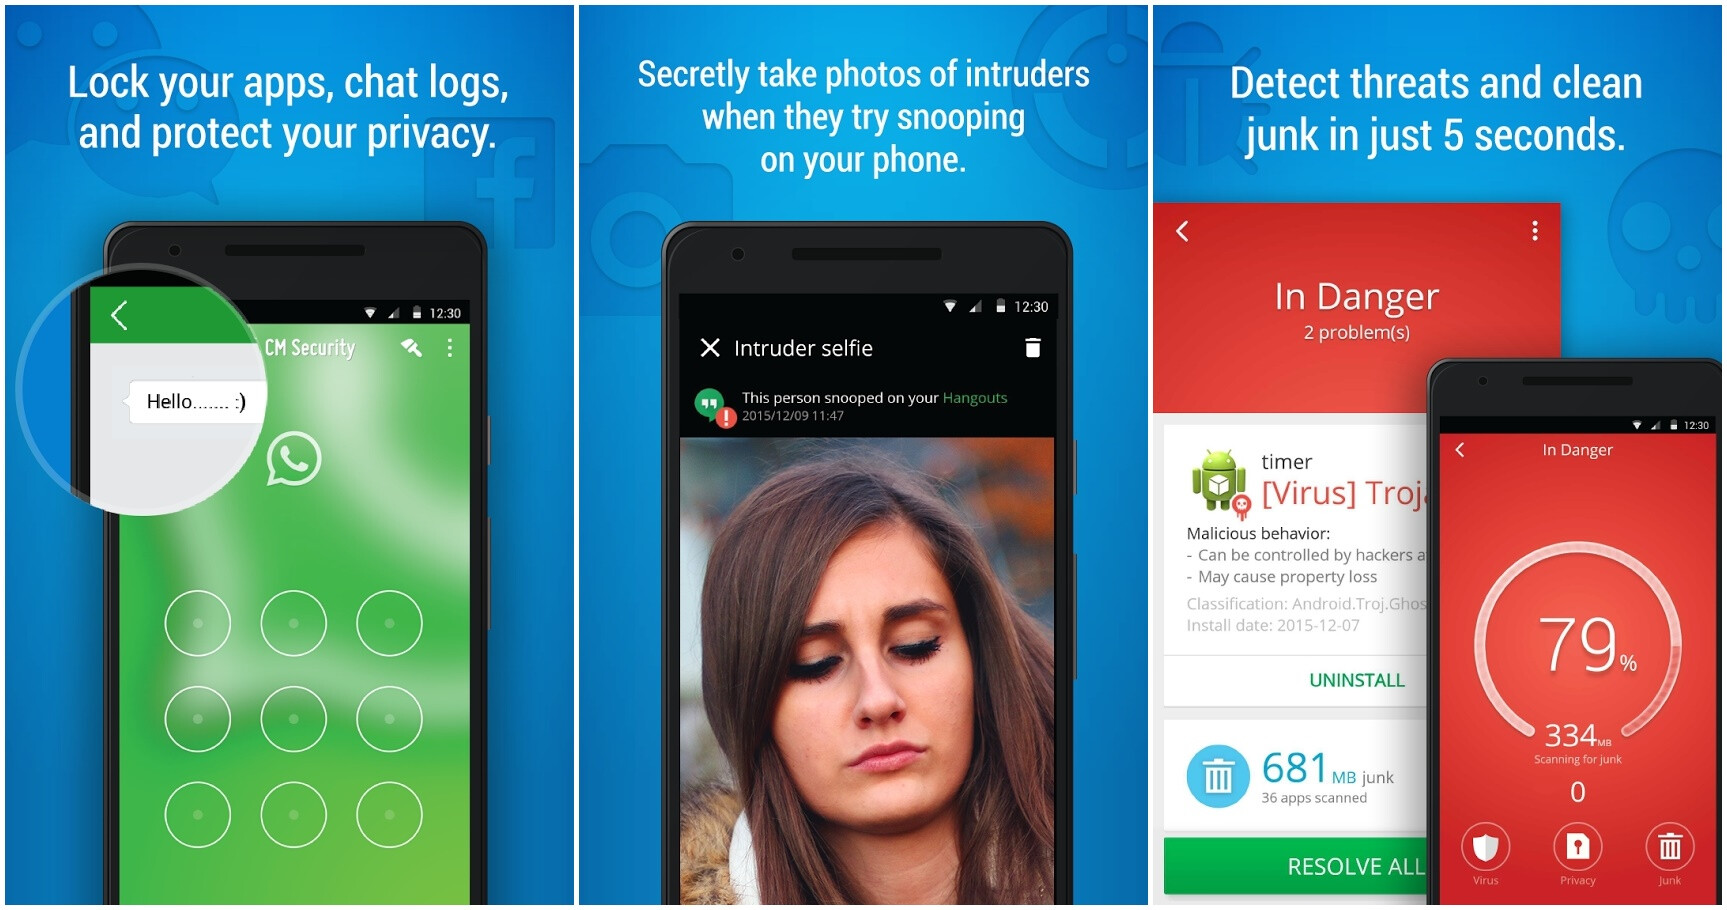 Phone Do You Need An Antivirus For Android Phone 5 top rated antivirus and security apps for android smartphones tablets